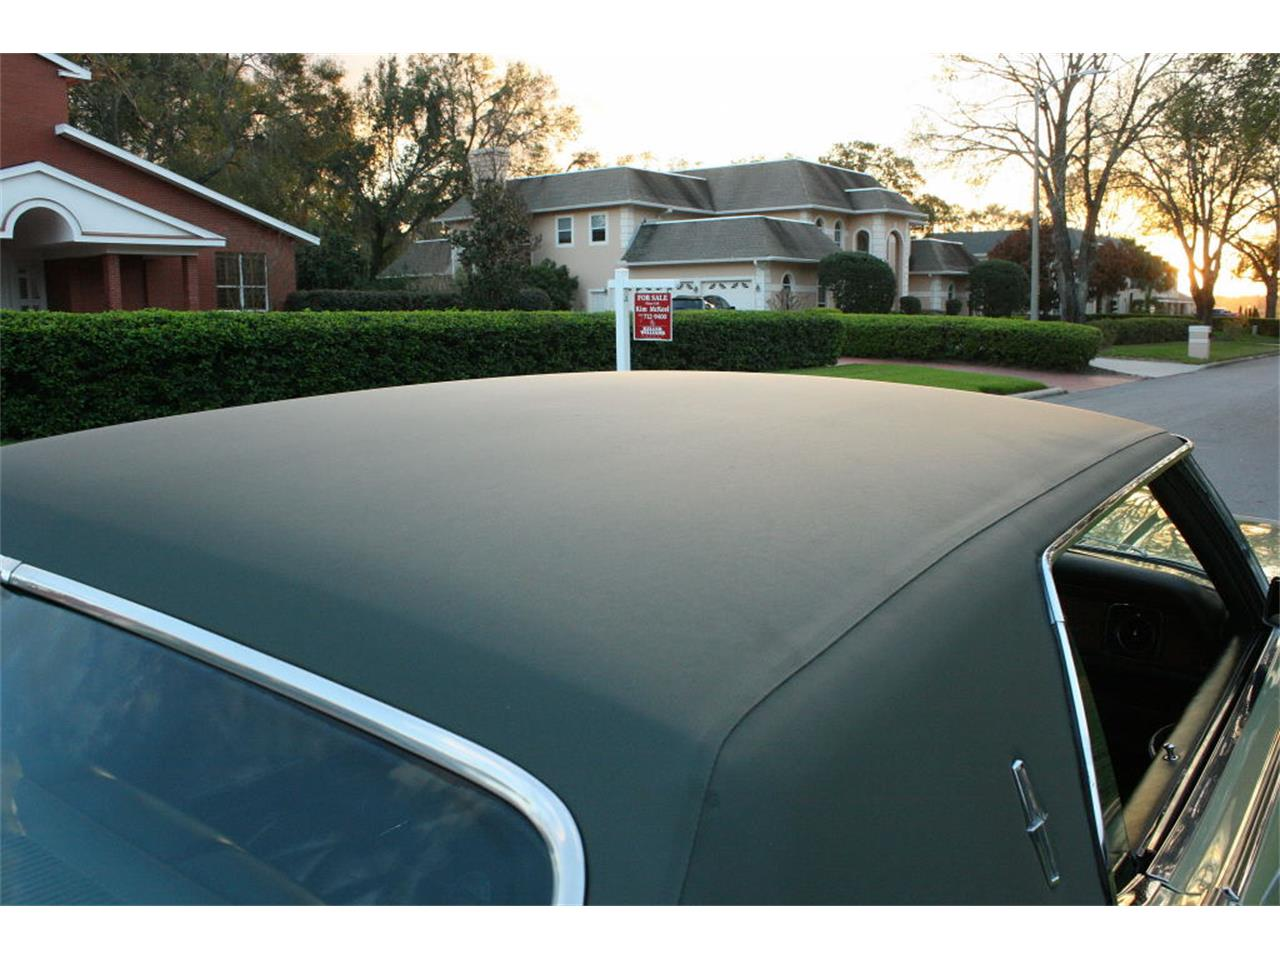 Large Picture of '69 Lincoln Continental Mark III located in Lakeland Florida - $24,500.00 Offered by MJC Classic Cars - OPDW